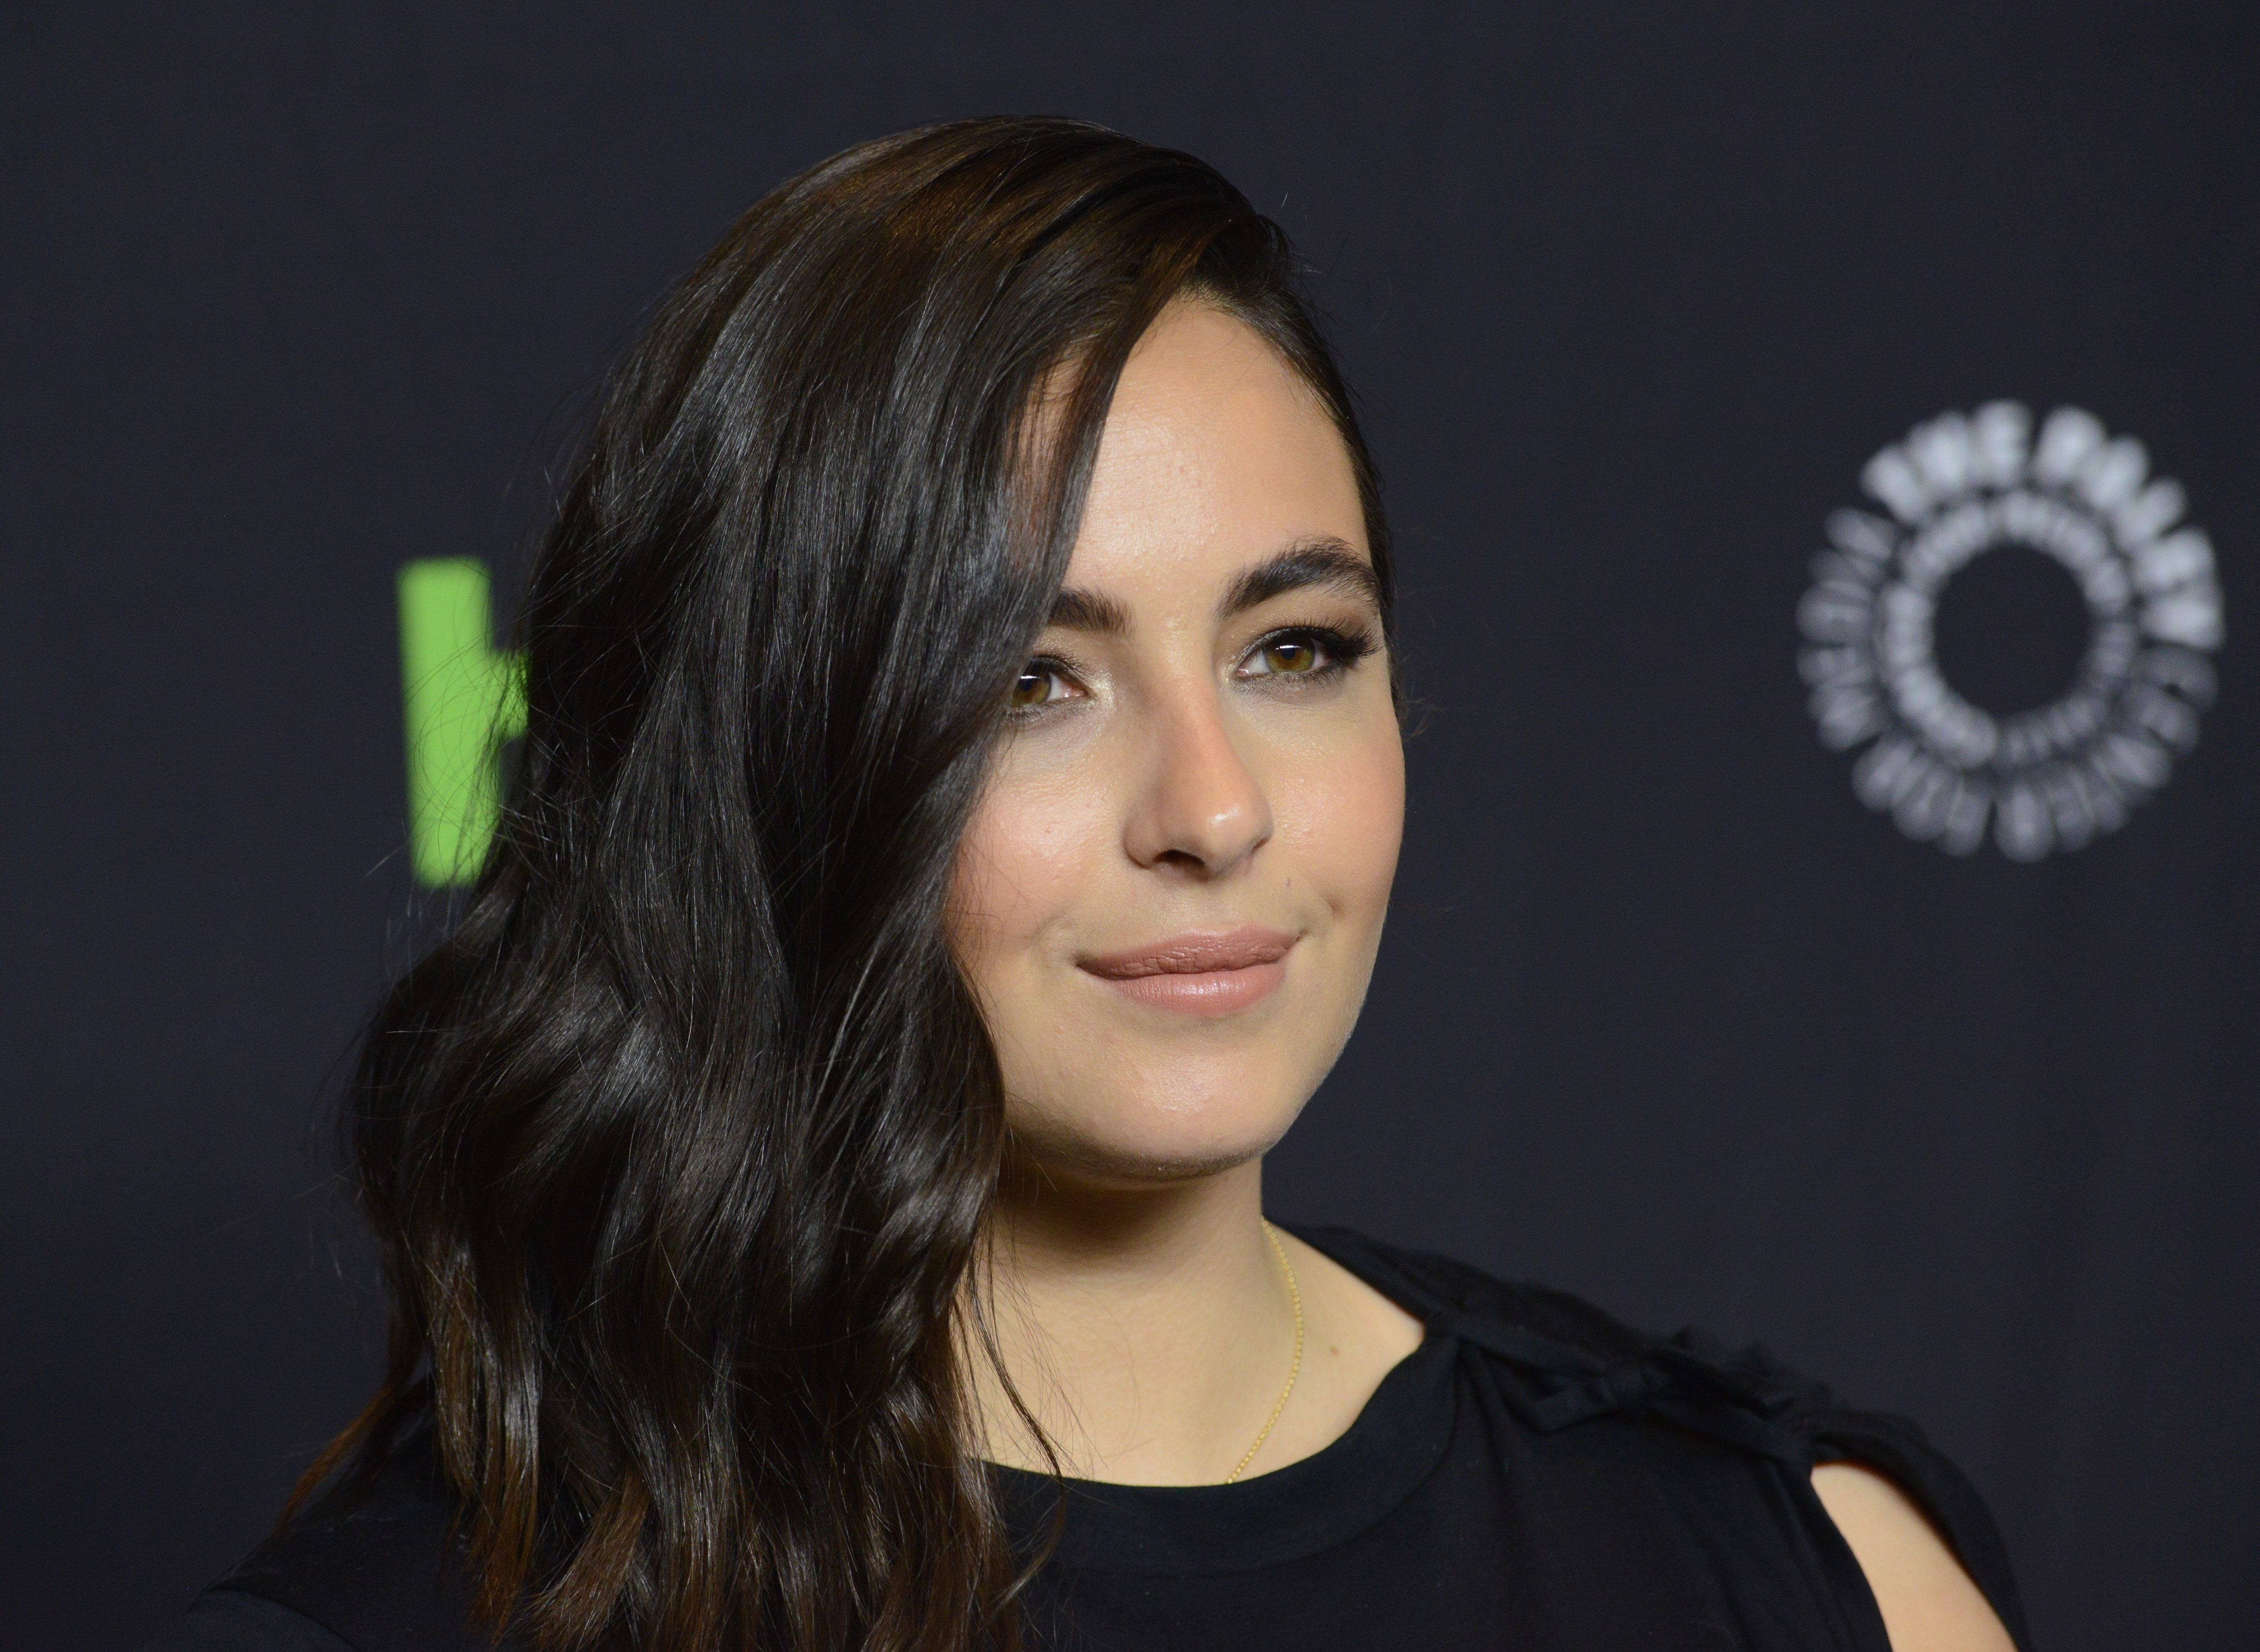 'Walking Dead' Star Reportedly Leaves Instagram Over Body